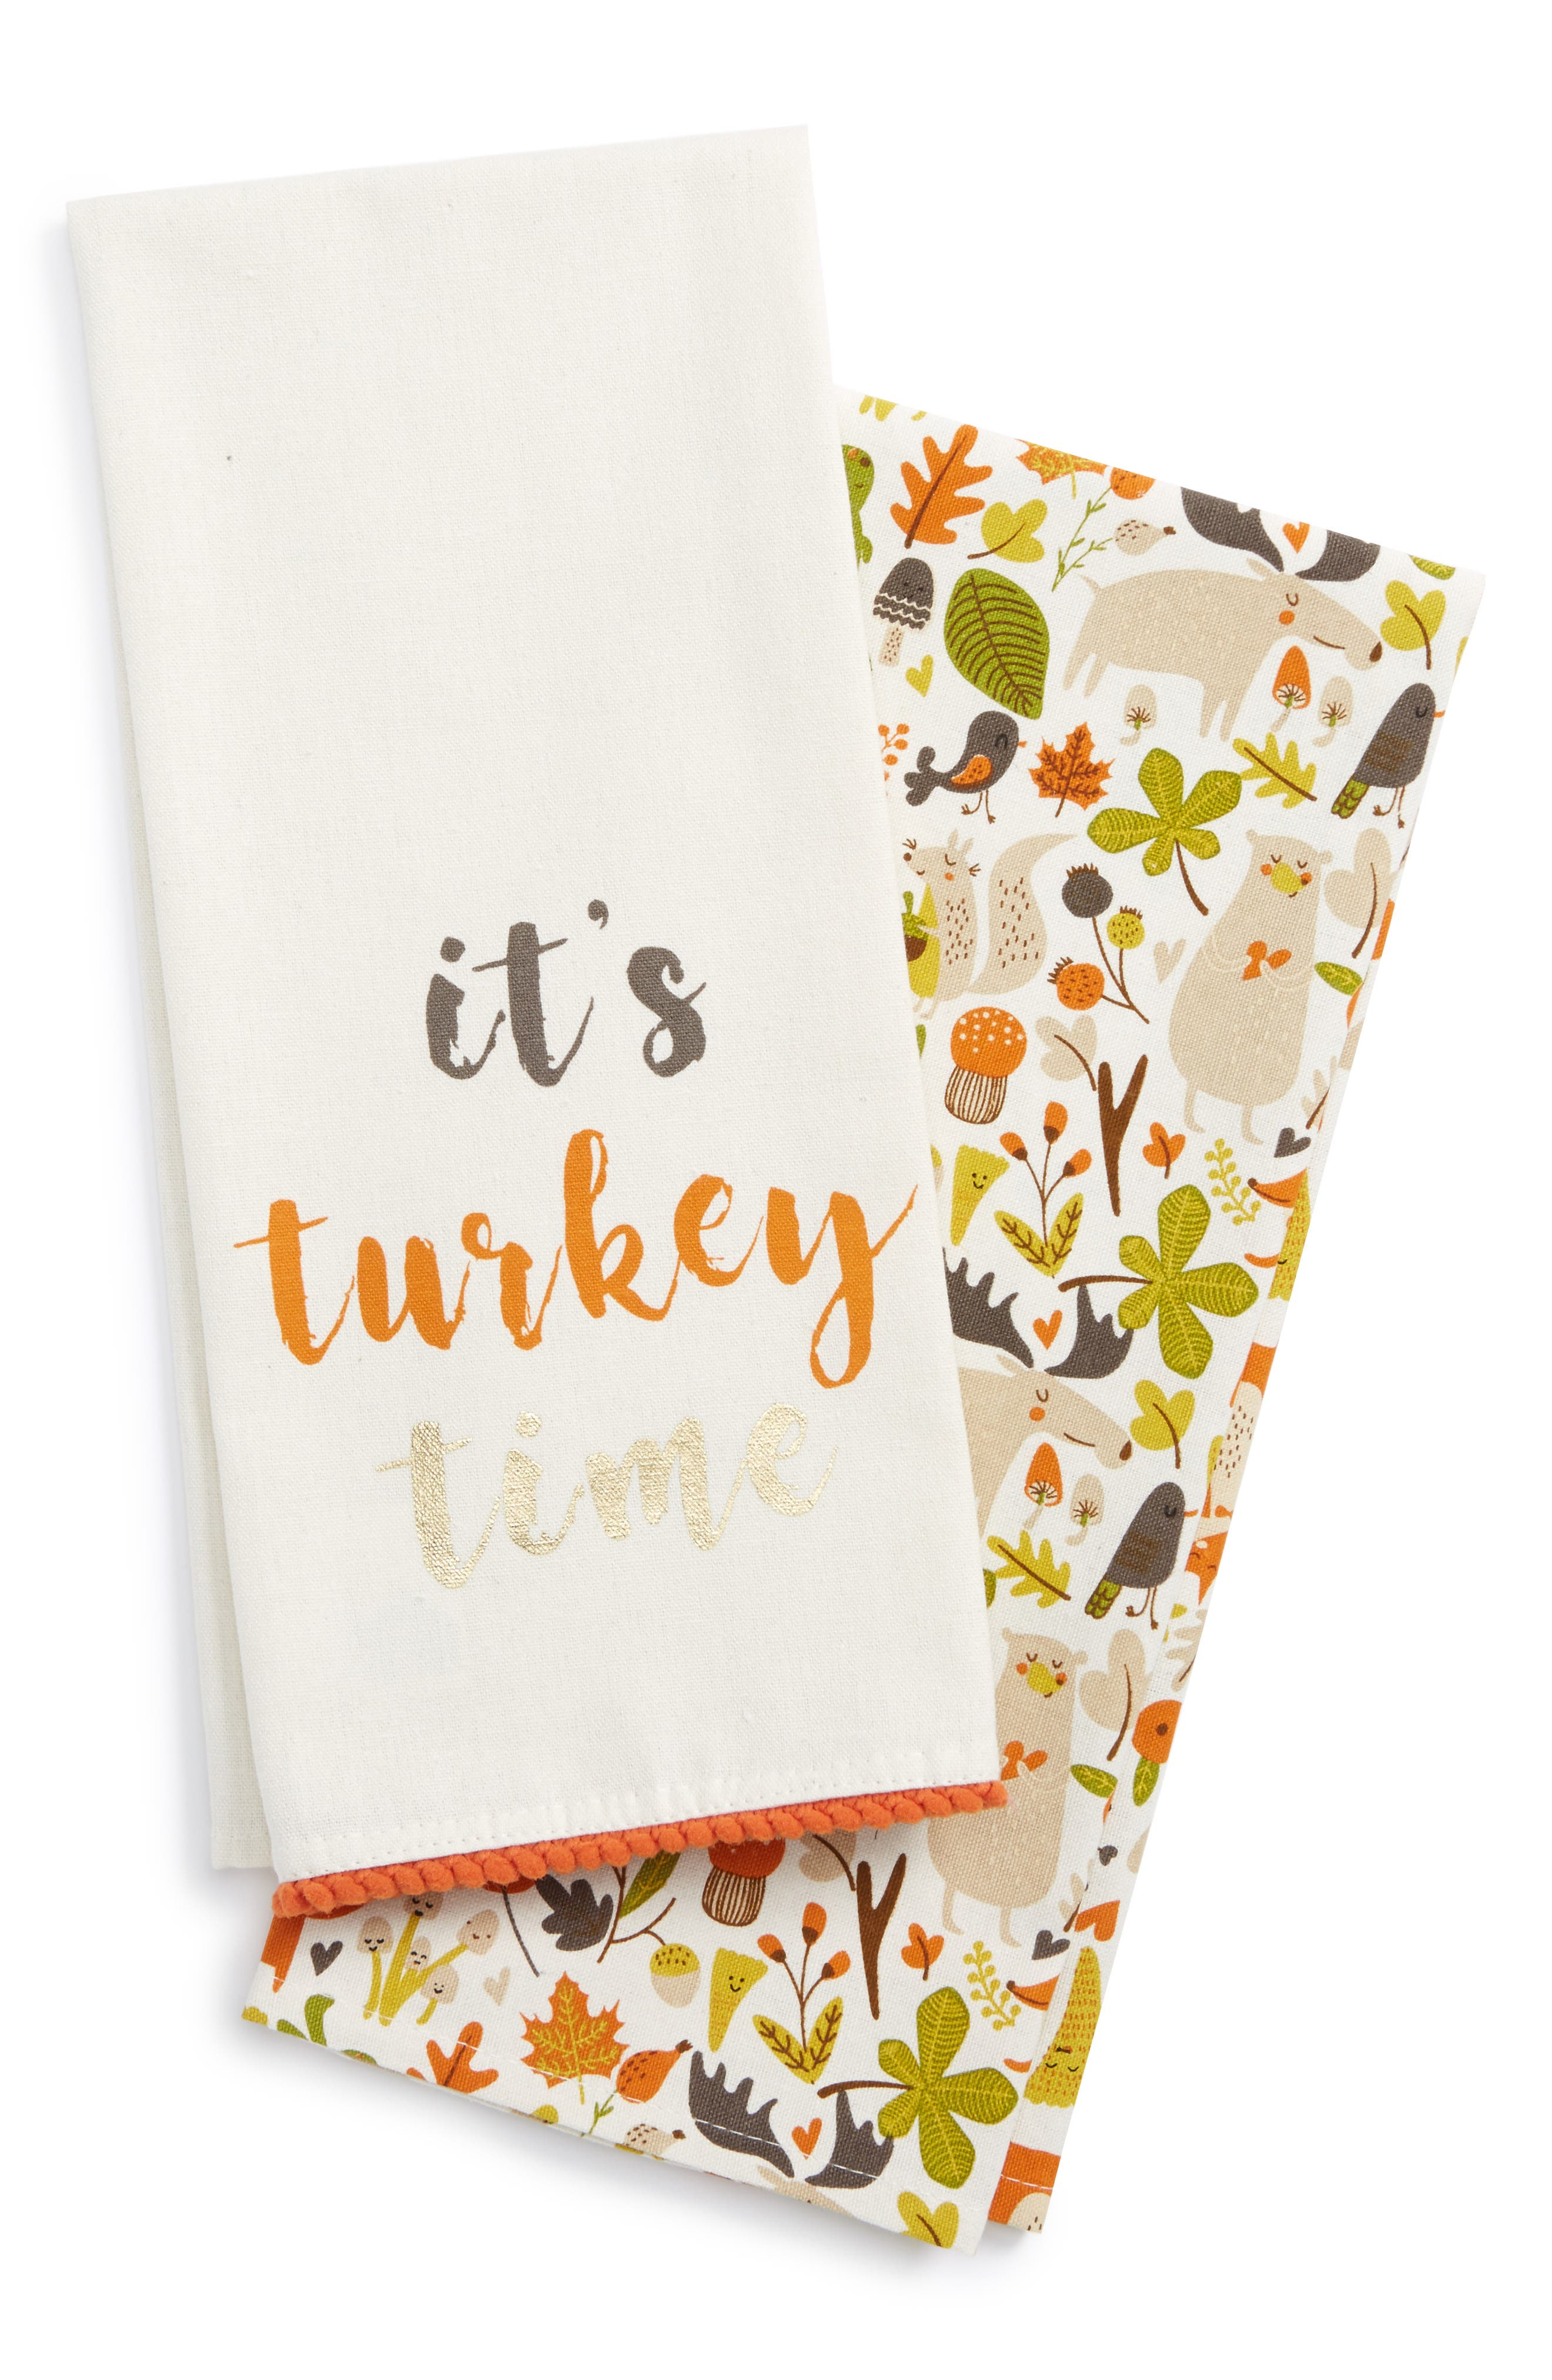 Turkey Time Set of 2 Dish Towels,                         Main,                         color, 250